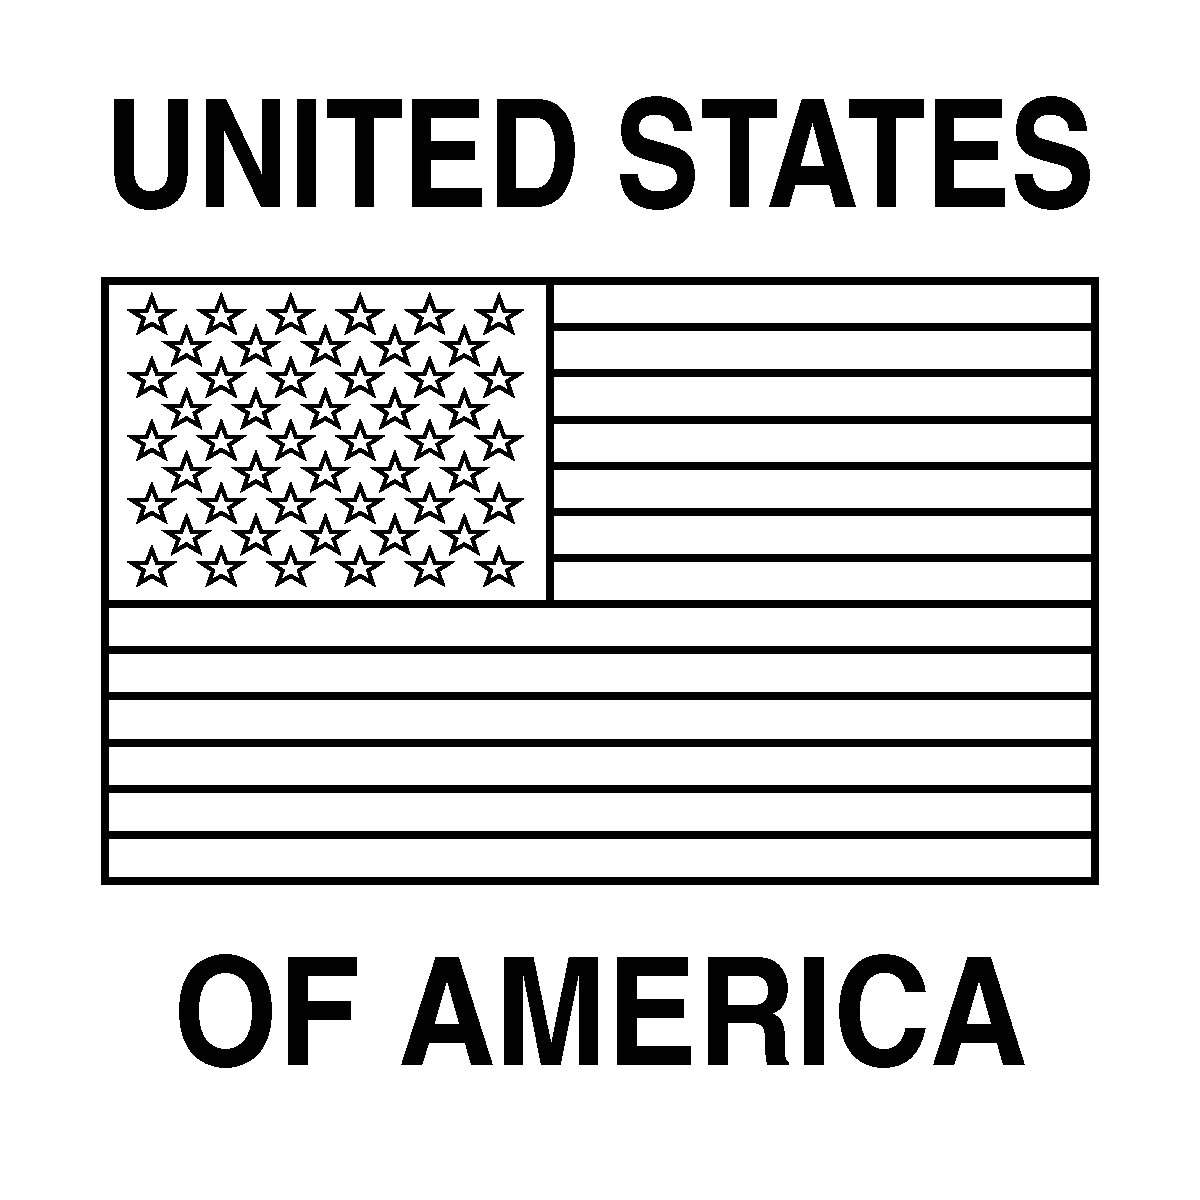 United States Of America Flag Coloring Page Clip Art Flags United States Color